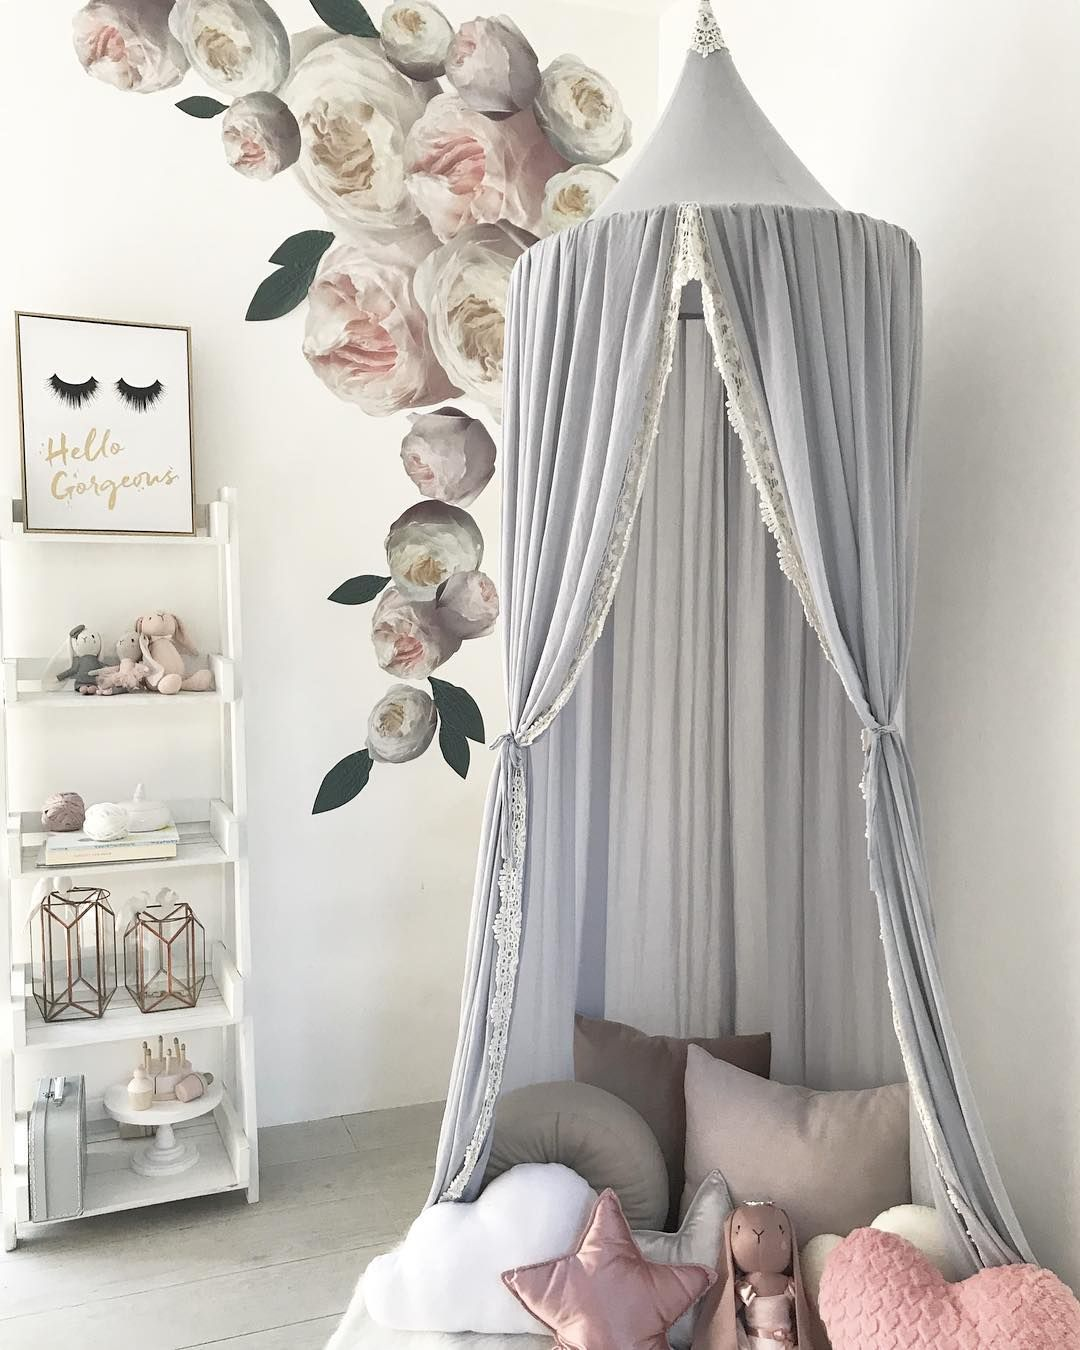 Beautiful kidu0027s lace canopy dolls and cushions